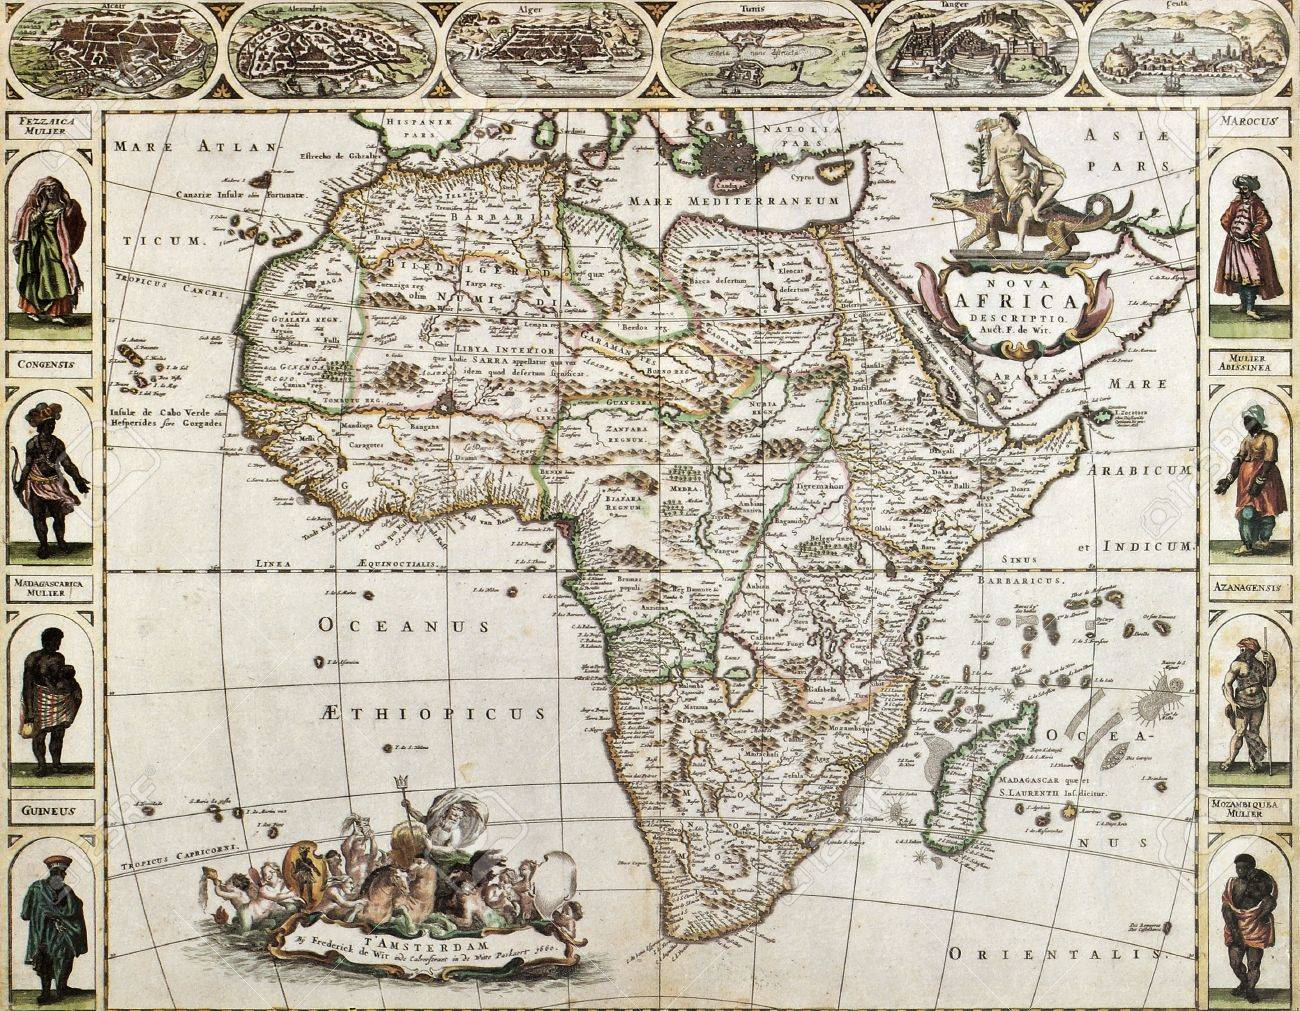 Africa-old-map-created-by-frederick-de-wit-published-in-amsterdam-1660